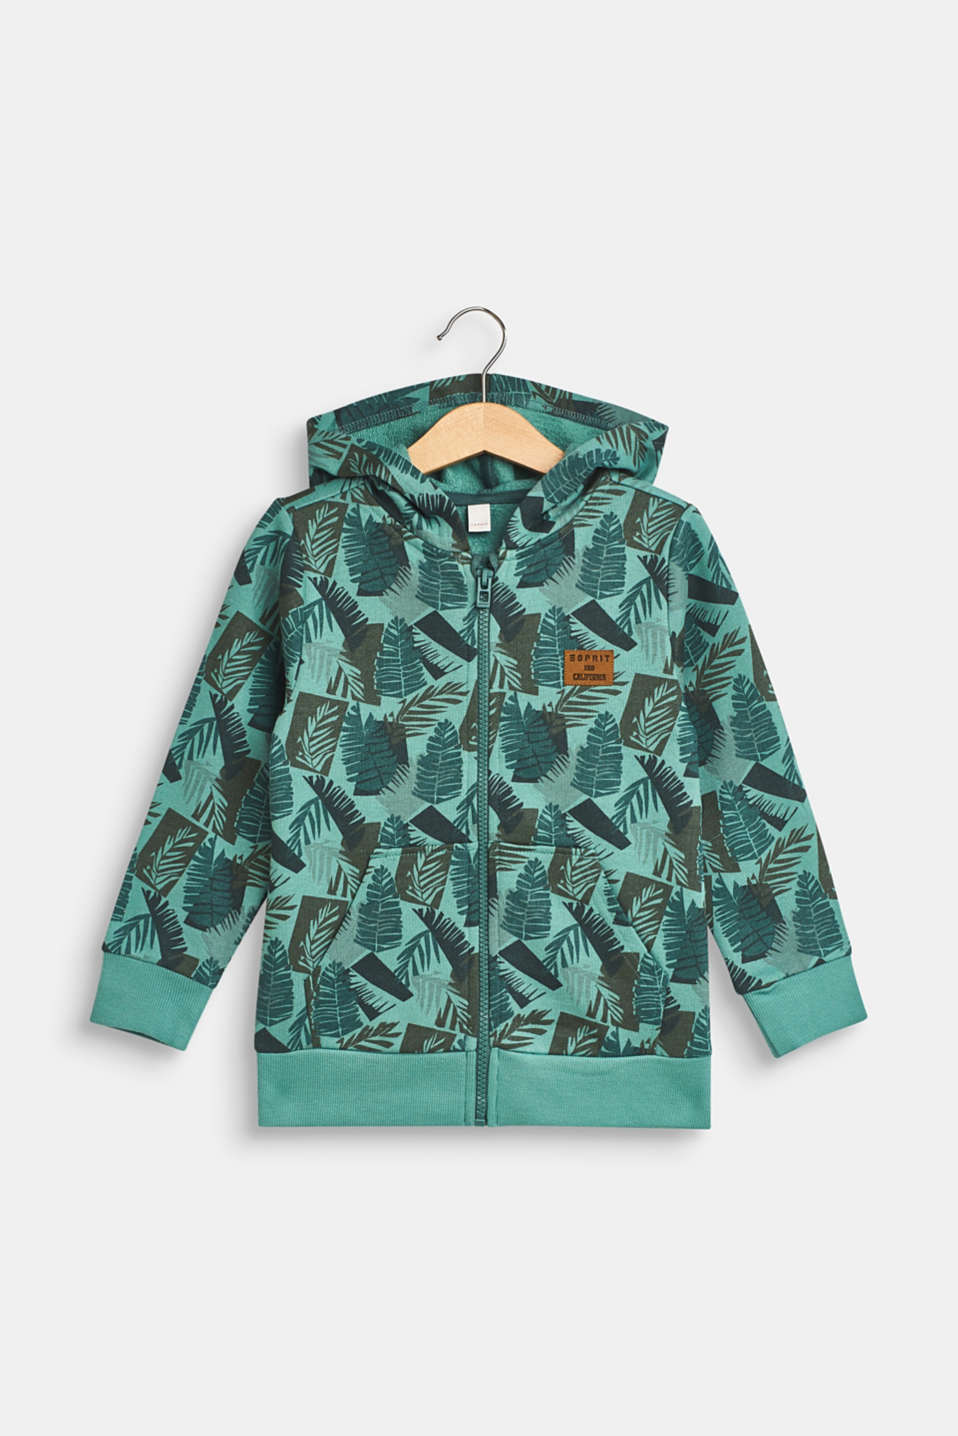 Esprit - Hoodie with tropical print, 100% cotton